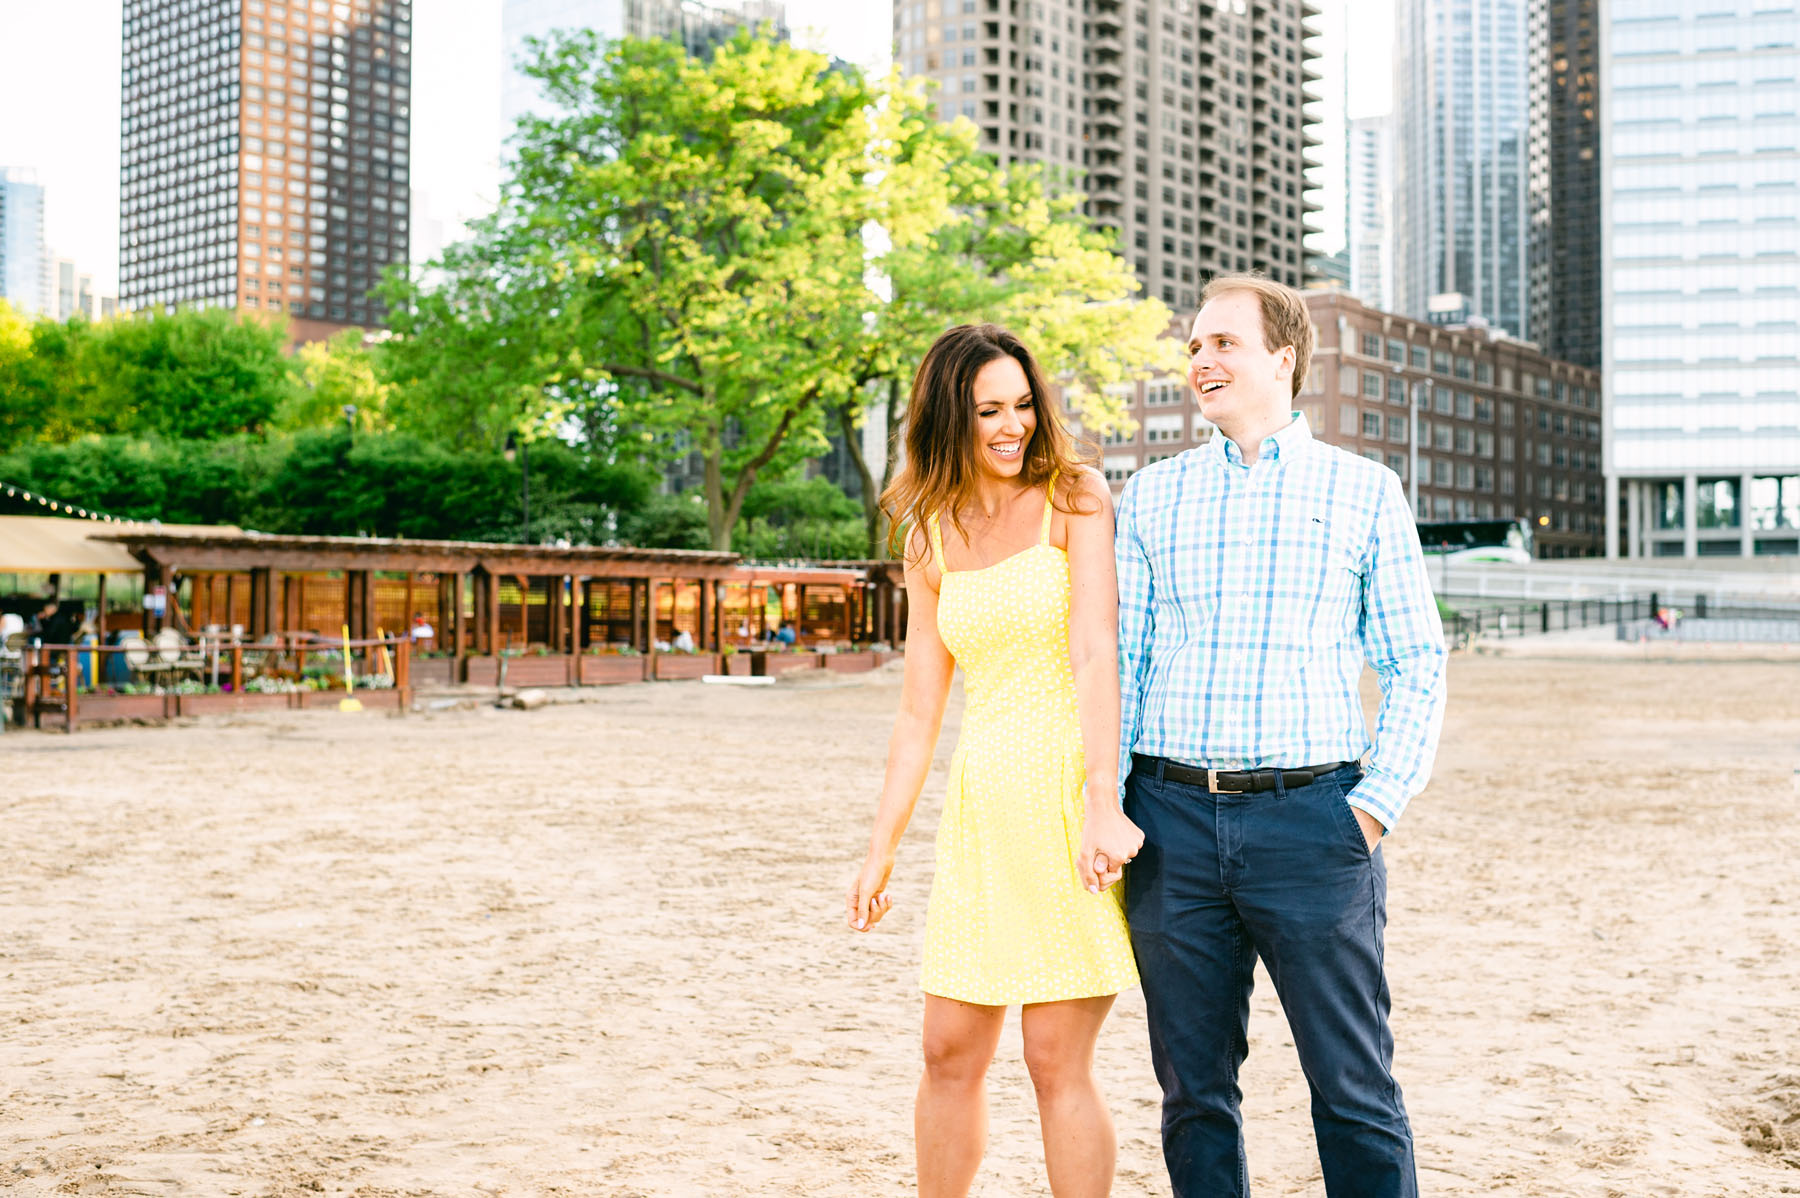 Oak Street Beach Engagement Photo